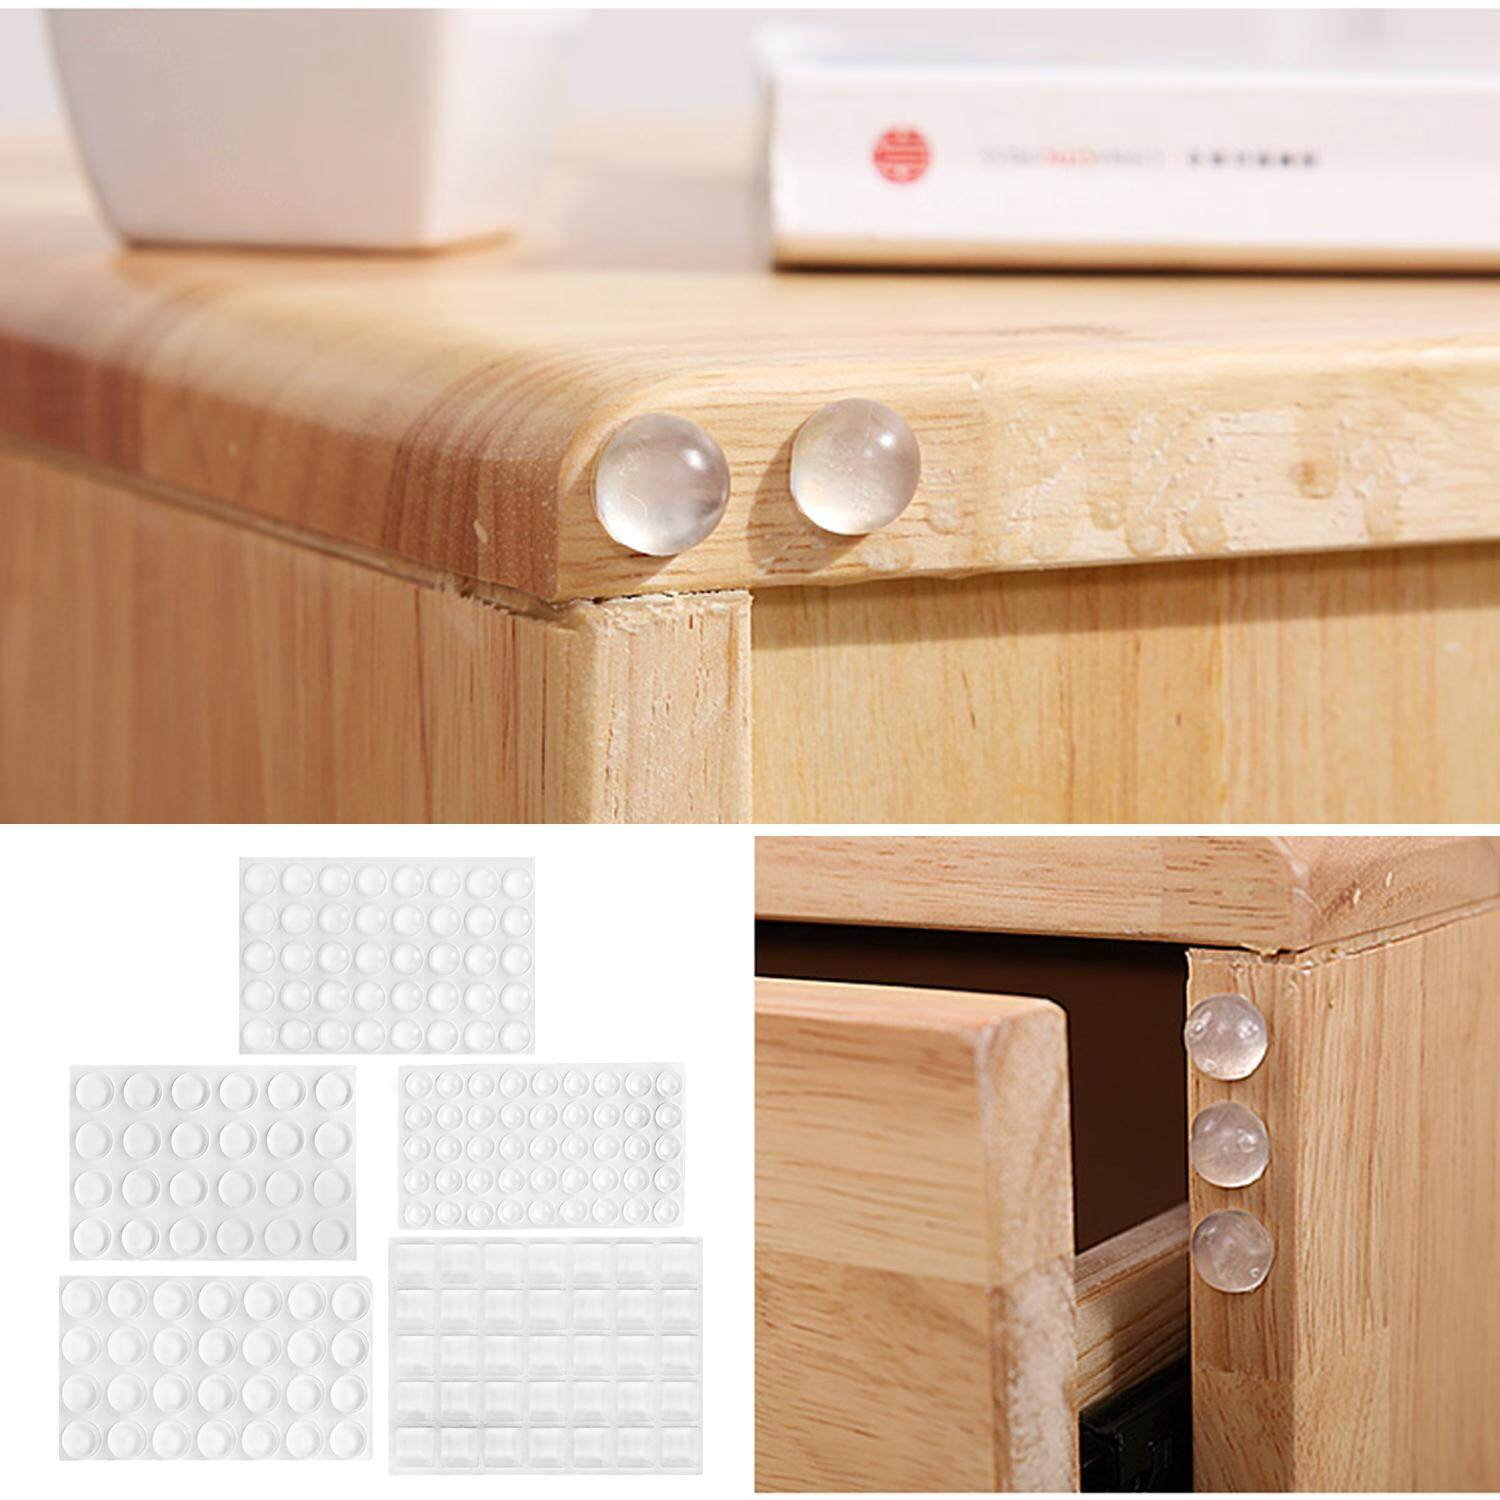 Bon 106 PCS 5 Sizes Self Adhesive Clear Feet Bumpers Buffer Dots Pads Sound  Dampening For